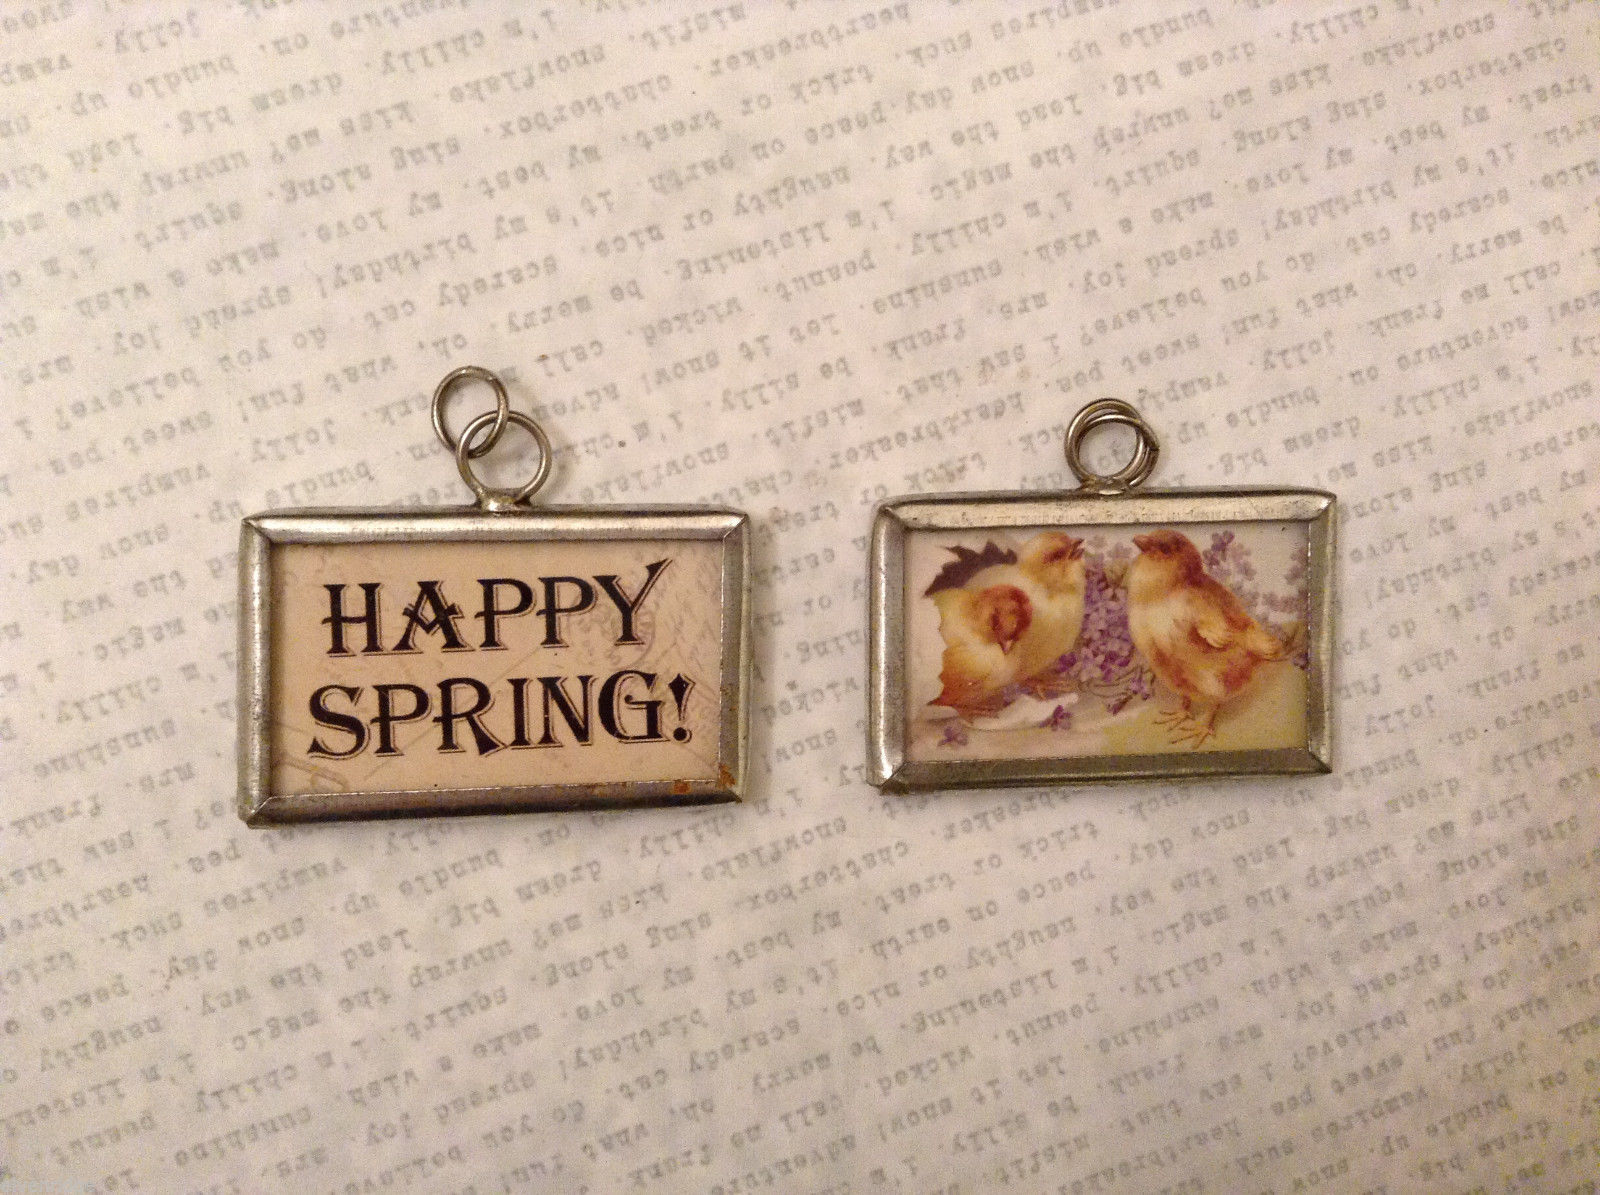 Easter 2 Sided Charm Tag Pendant - Happy spring / Chick flower basket stuffer